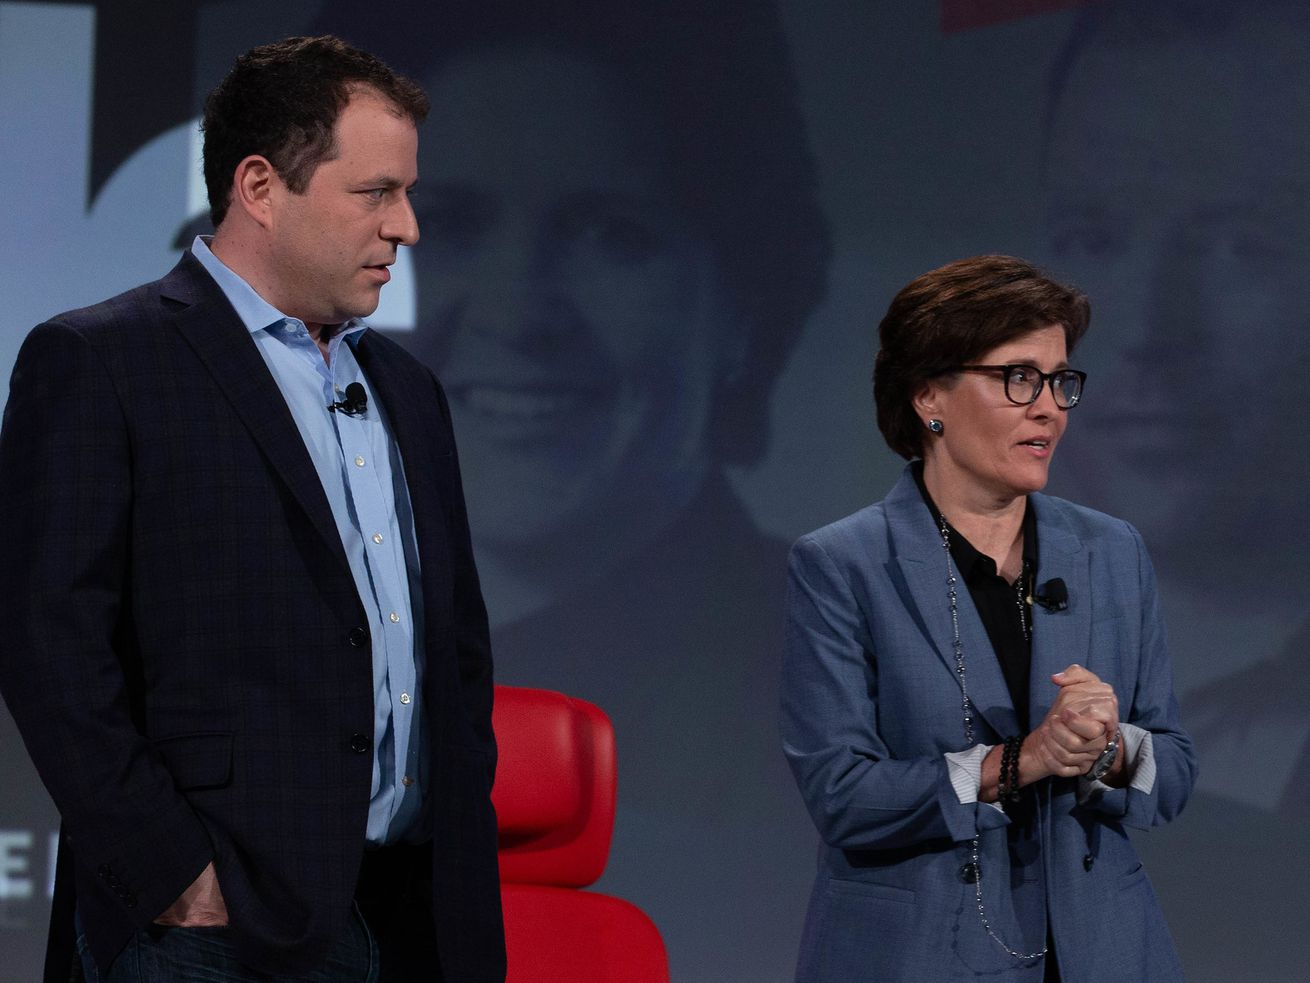 Recode Executive Editor Peter Kafka, left, and Recode Editor at Large Kara Swisher